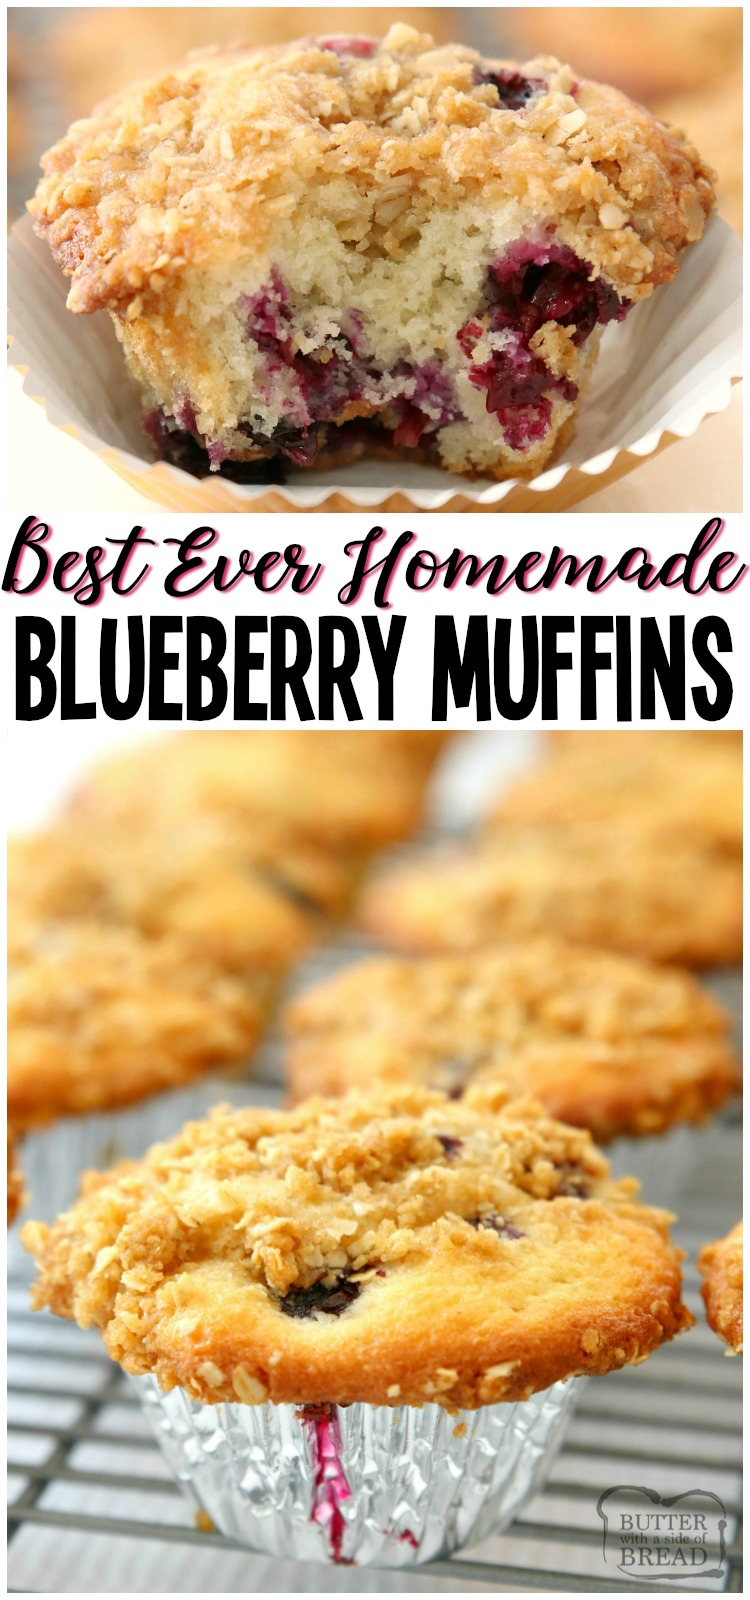 Best Blueberry Muffins that are light, flavorful and full of sweet, juicy blueberries! Family favorite blueberry muffin recipe that's been perfected over the years. Everyone loves the buttery streusel topping!